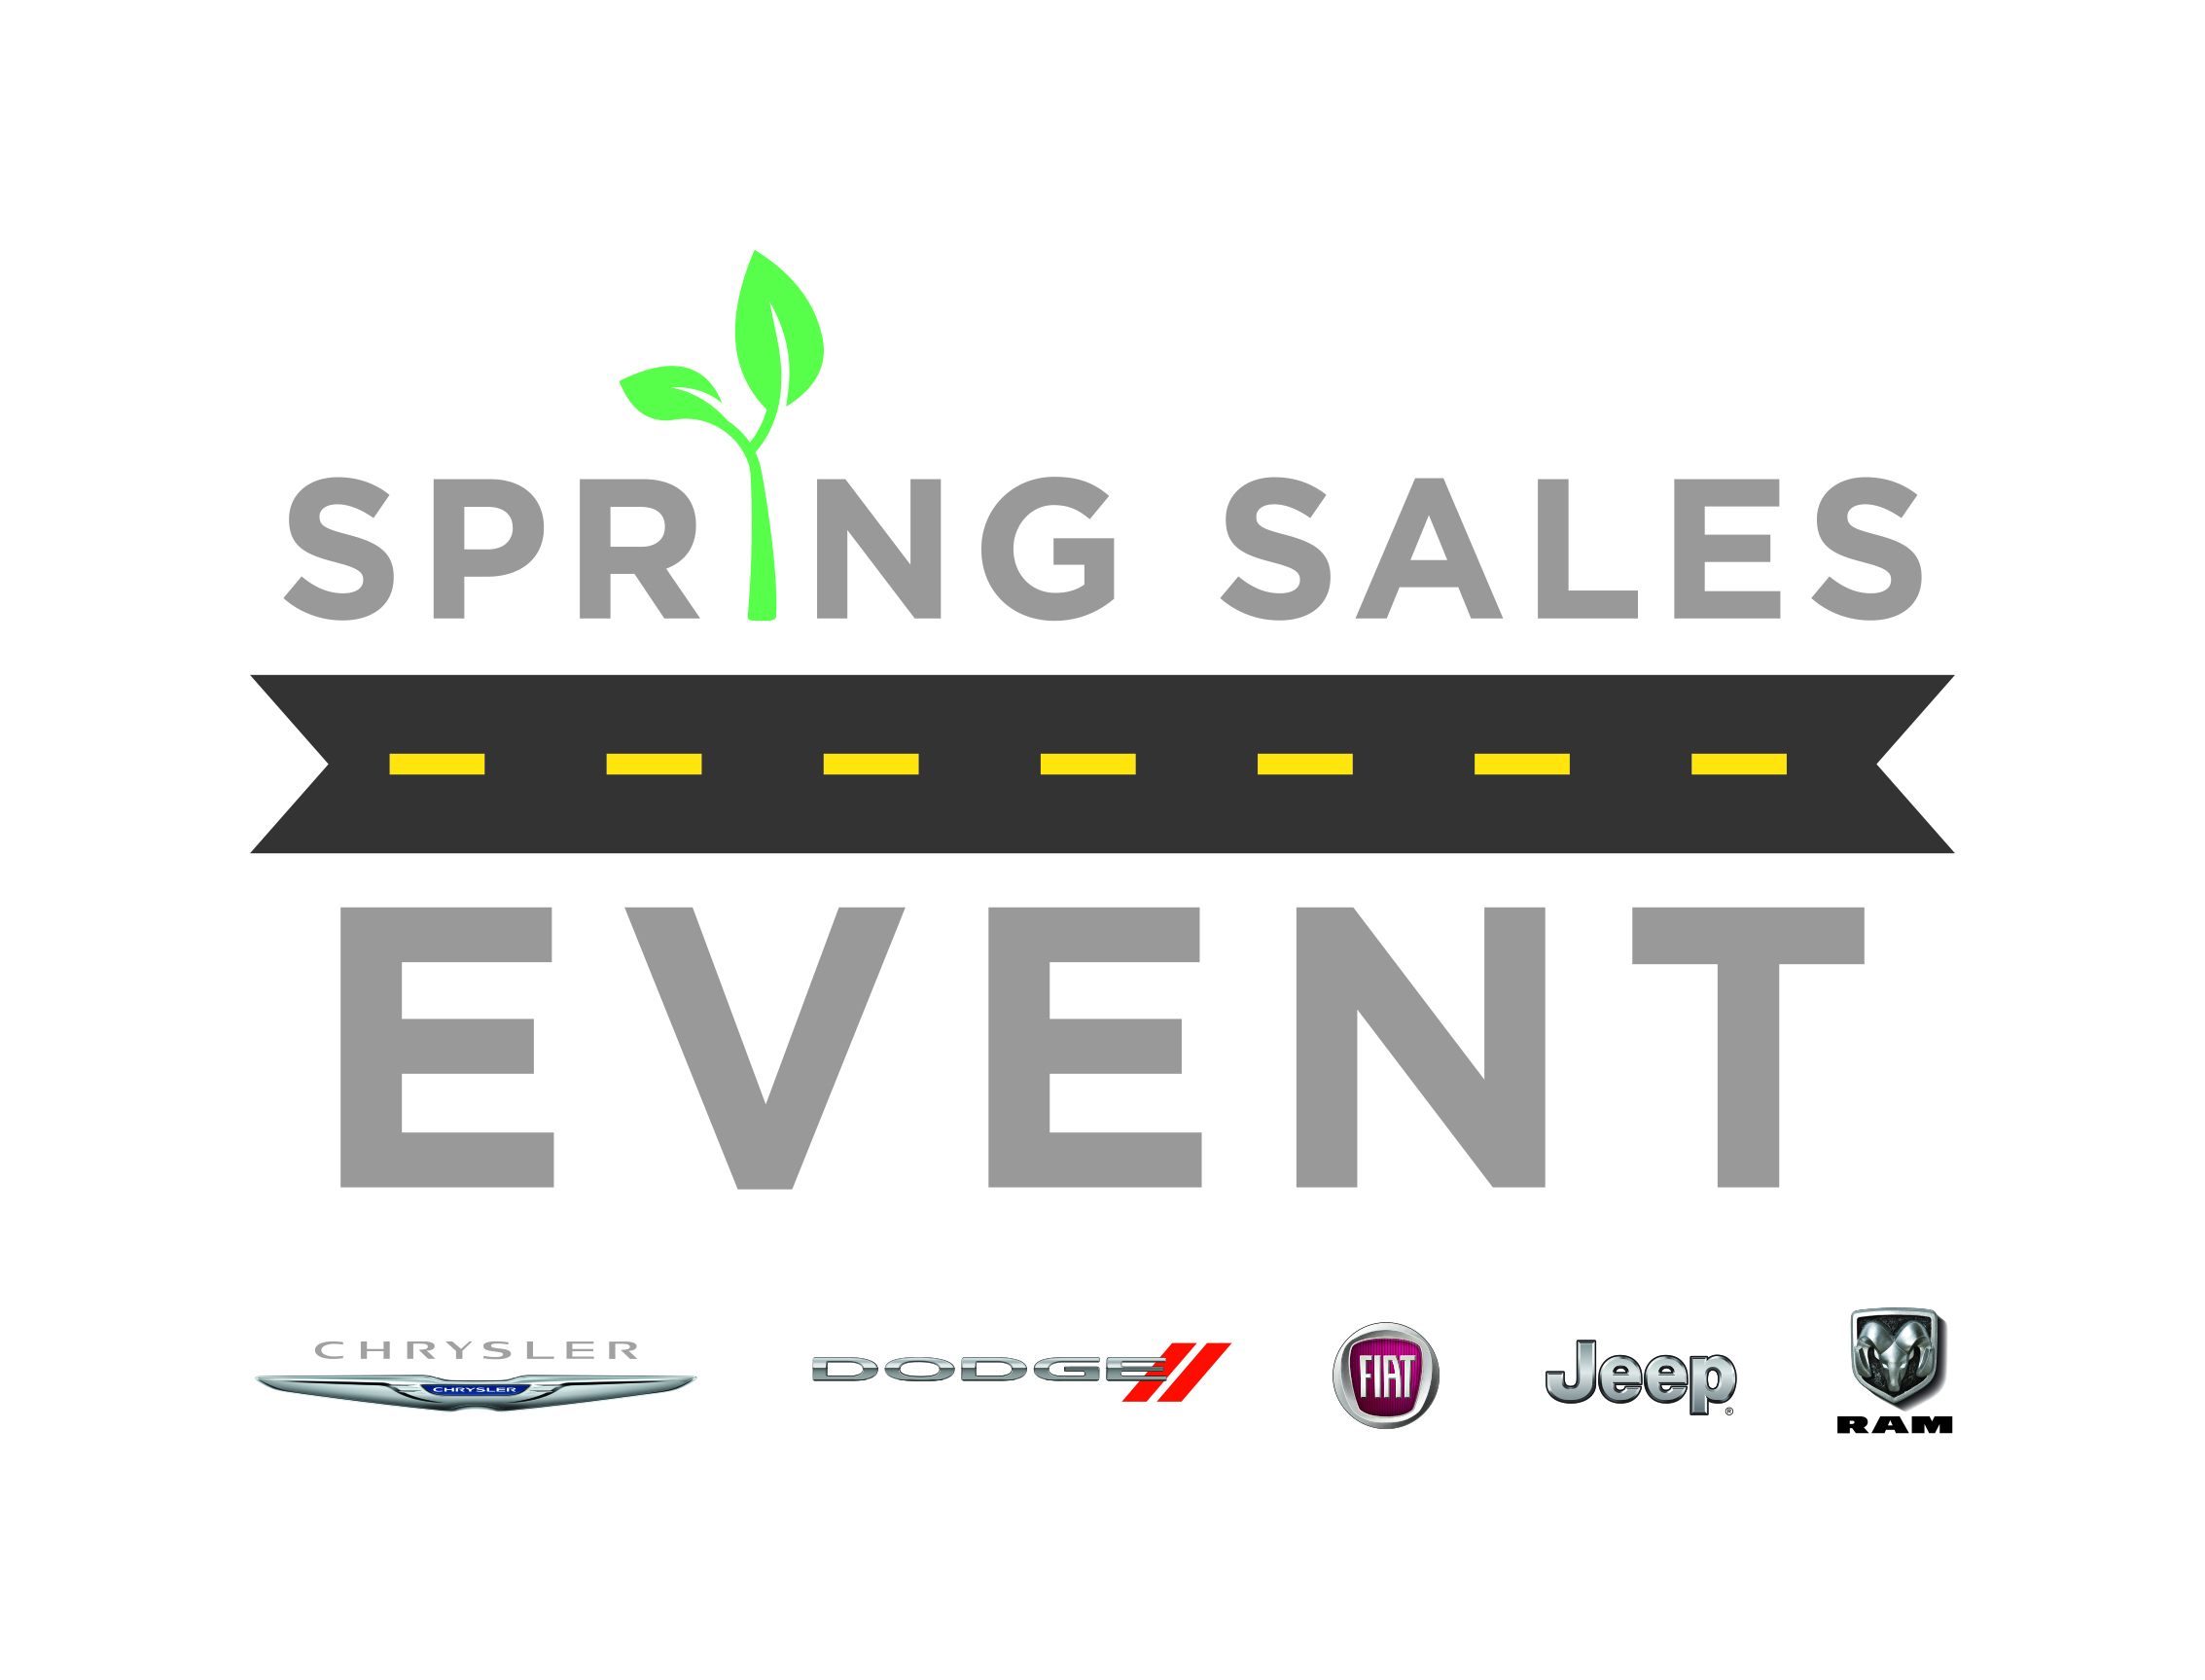 Spring Sales Event in Washington, MI